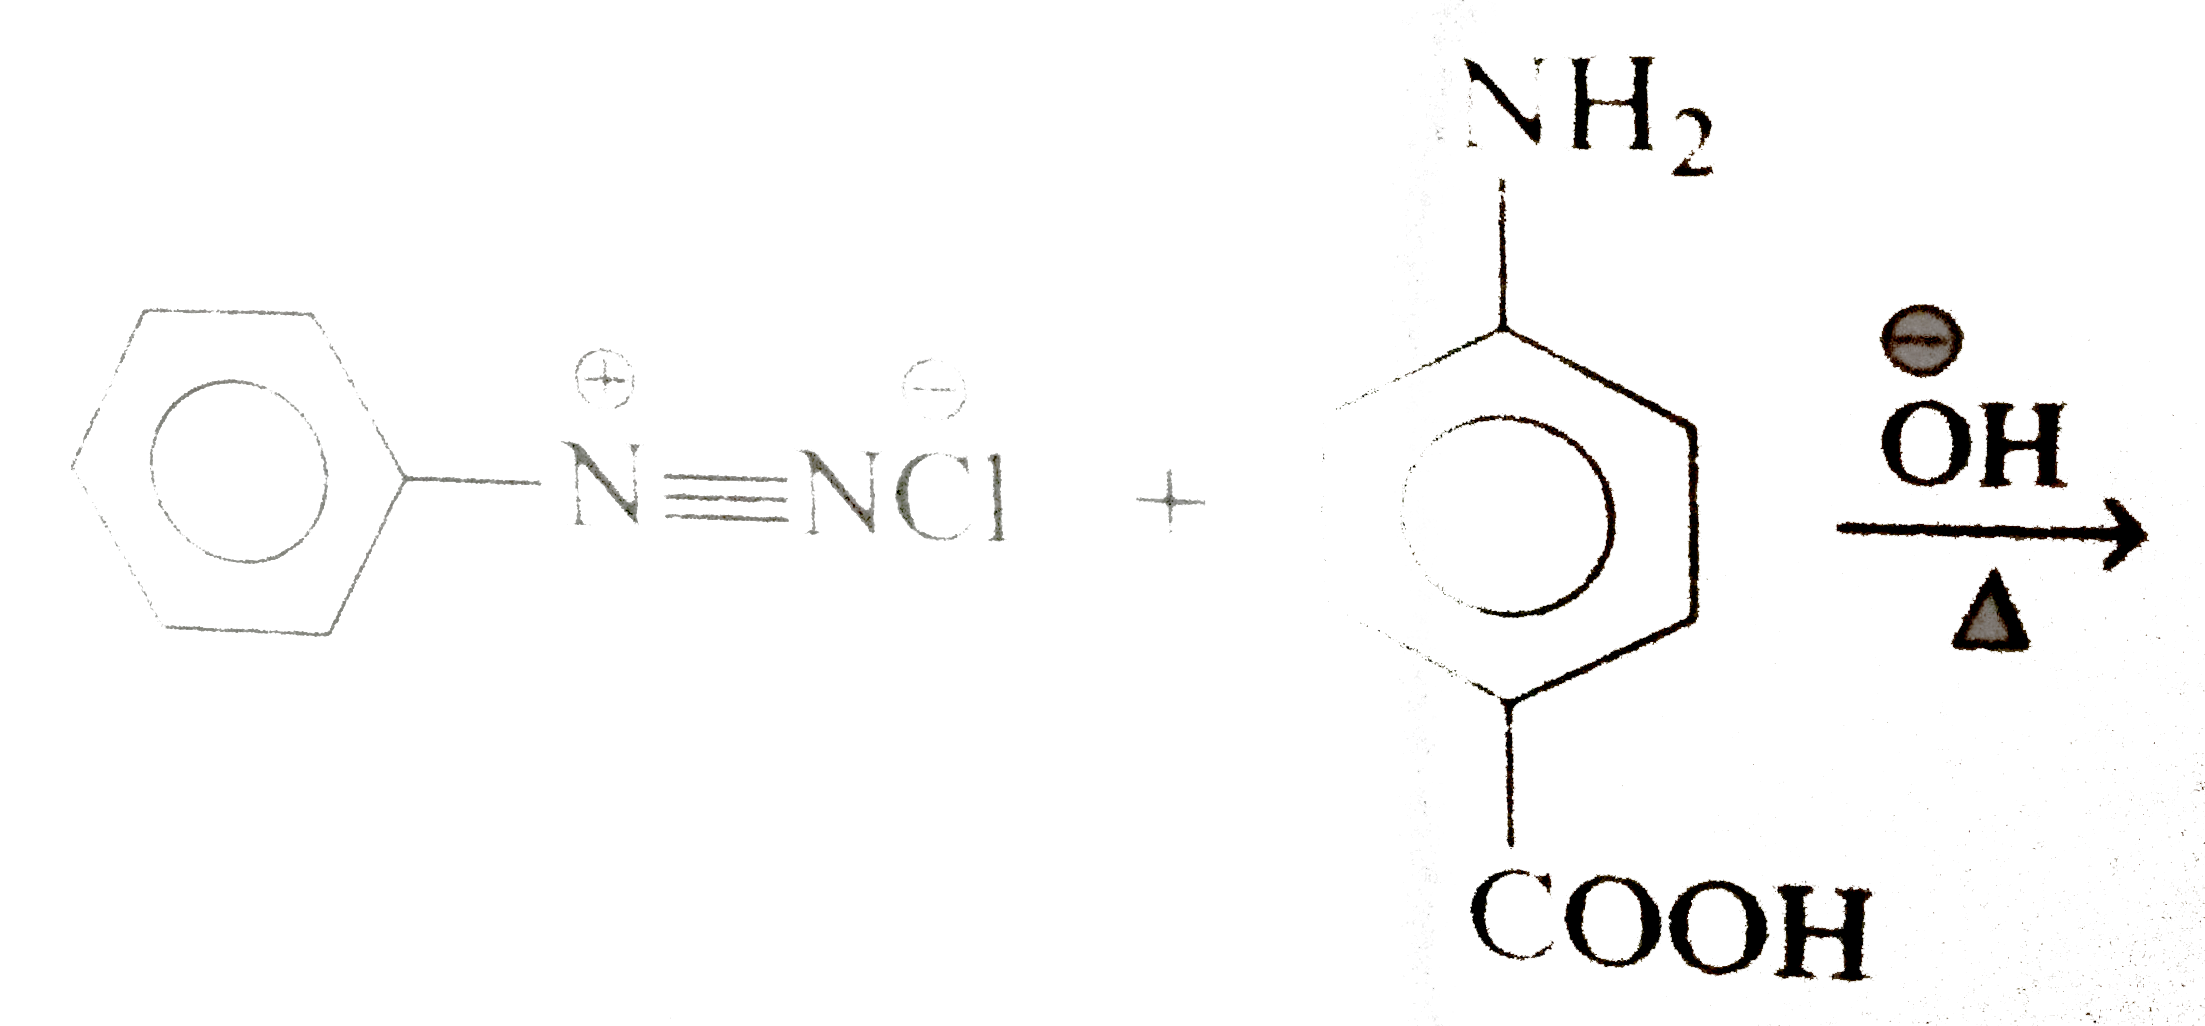 When an primary aromatic amine is treated with NaNO_(2)+HCI at 0